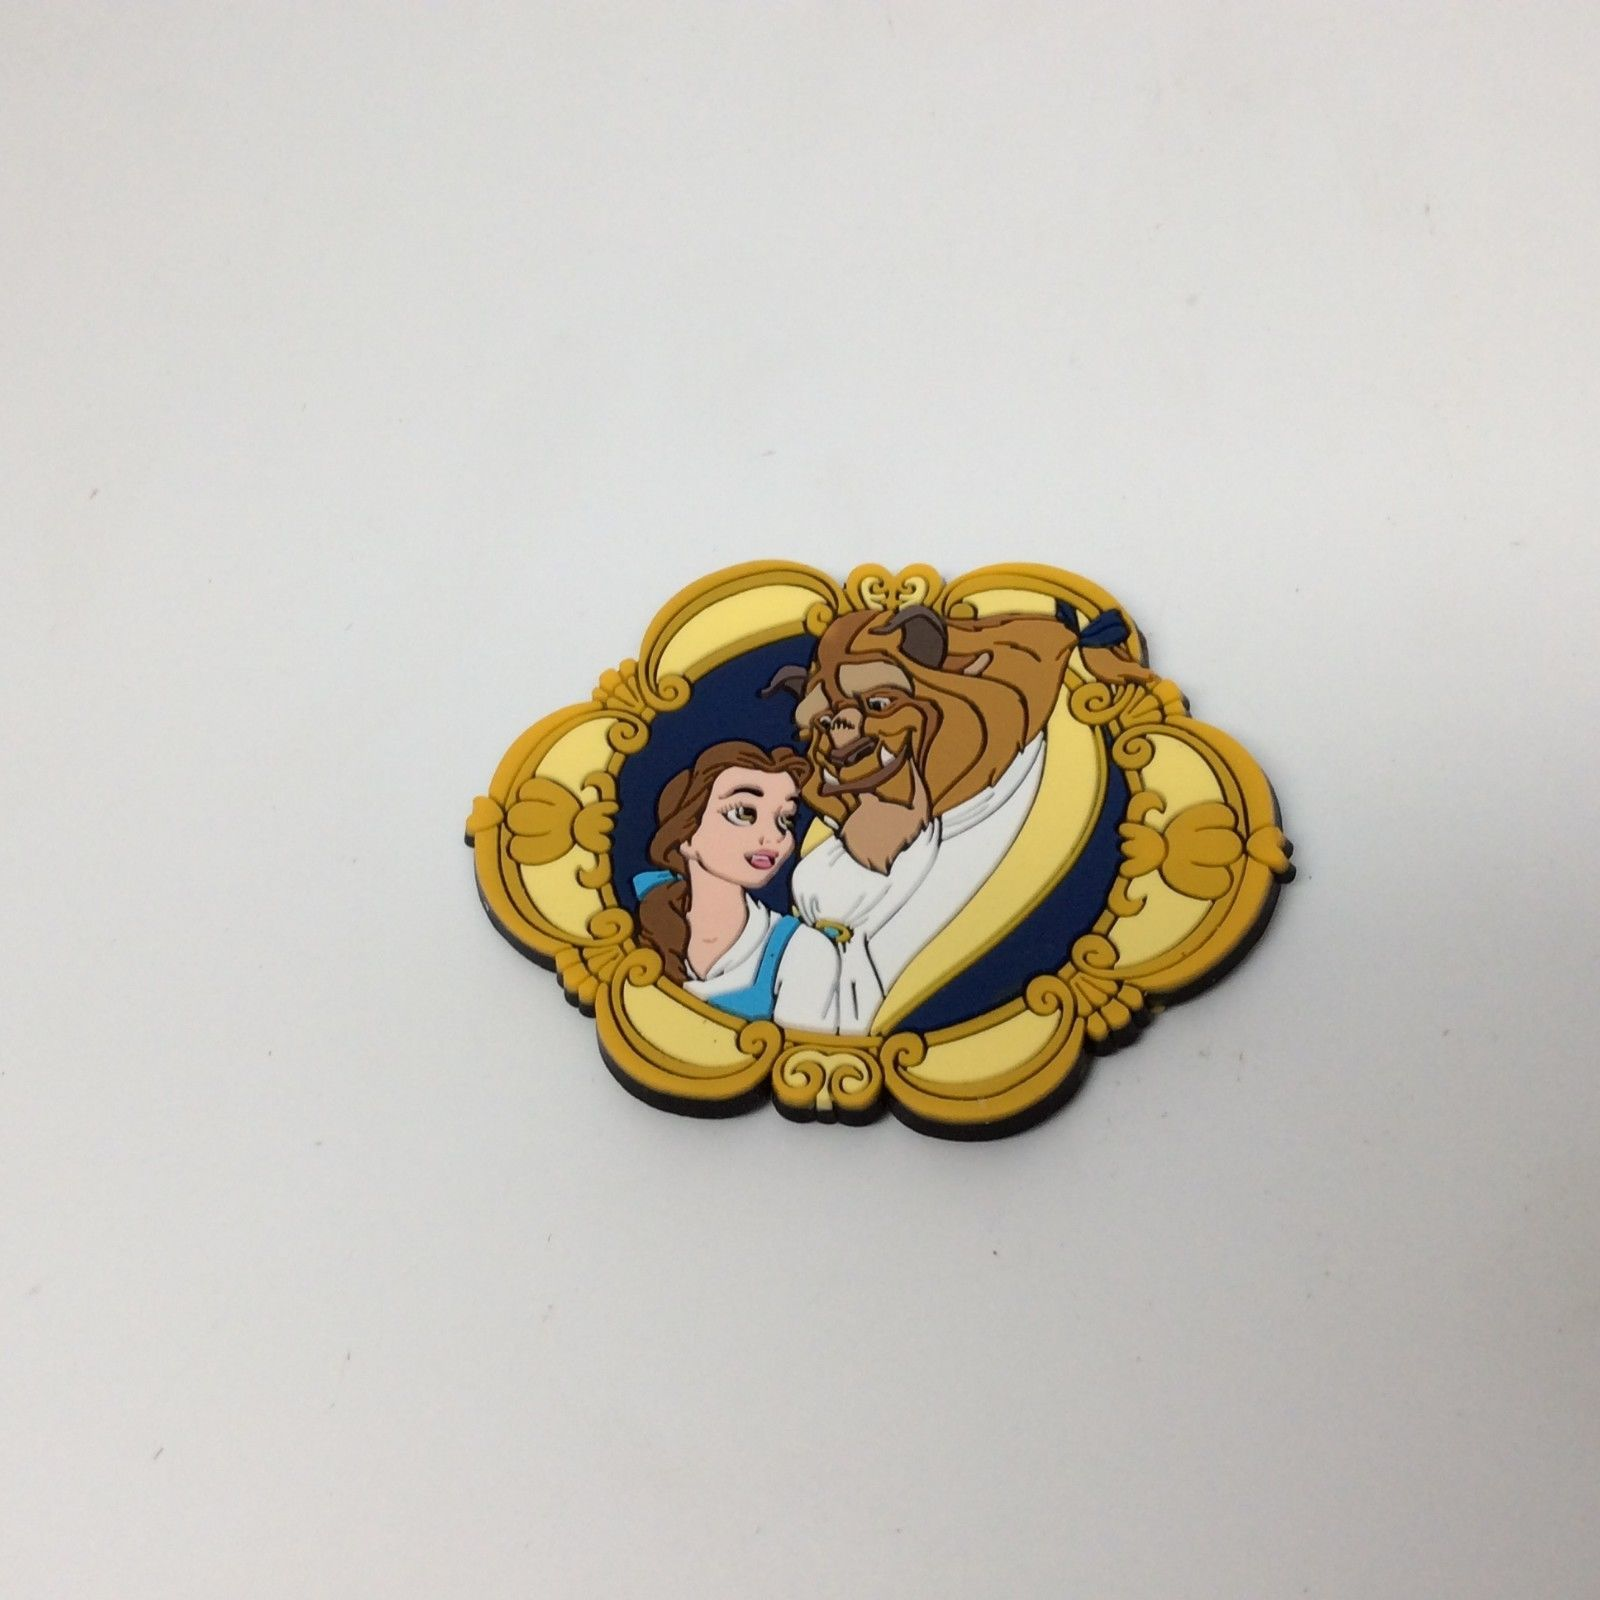 APPLAUSE BEAUTY AND THE BEAST MAGNET